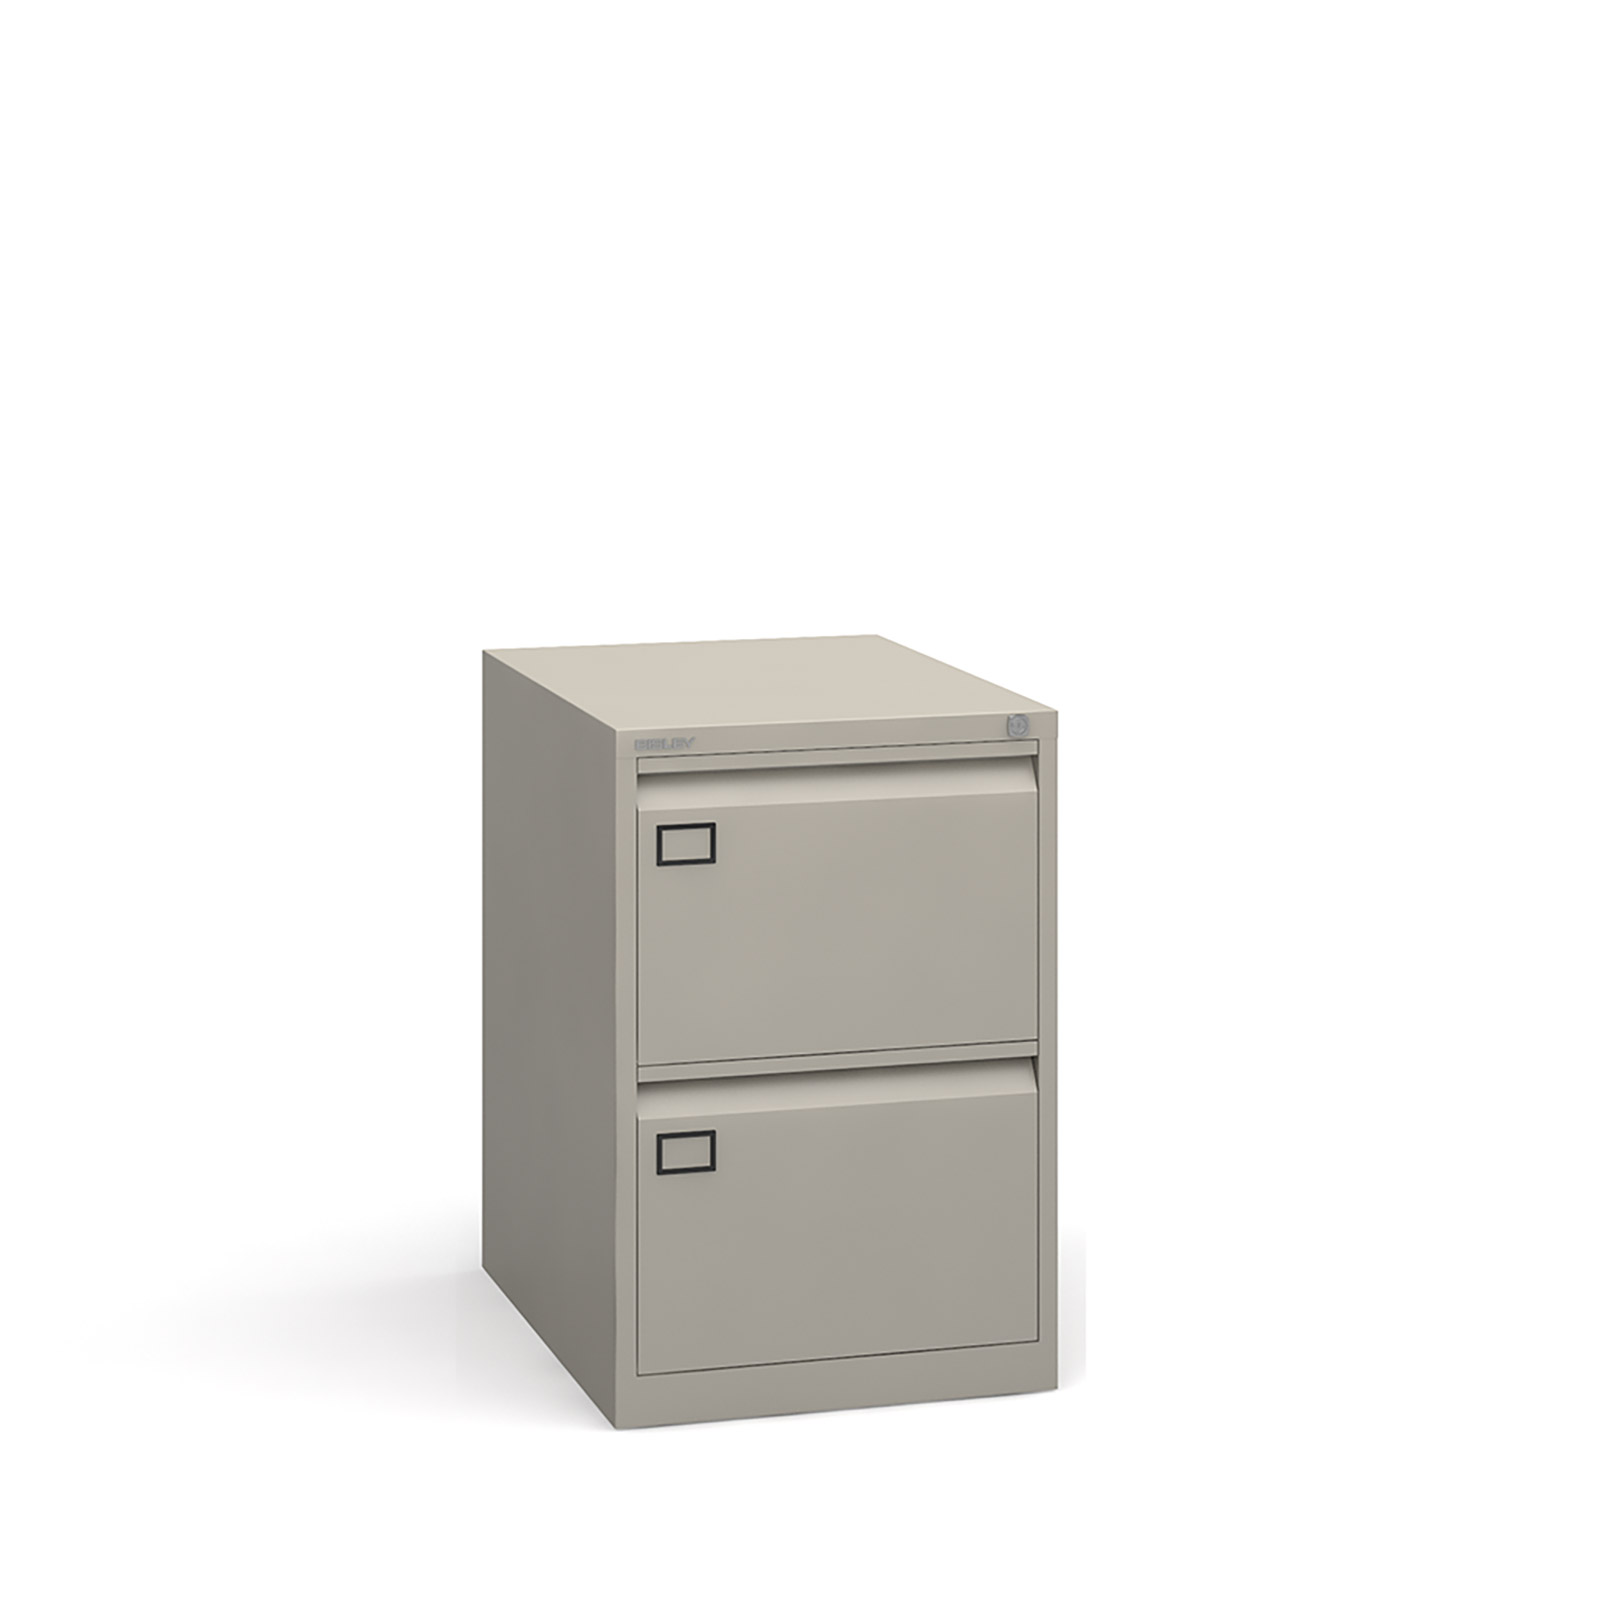 2 drawer executive filing cabinet Grey